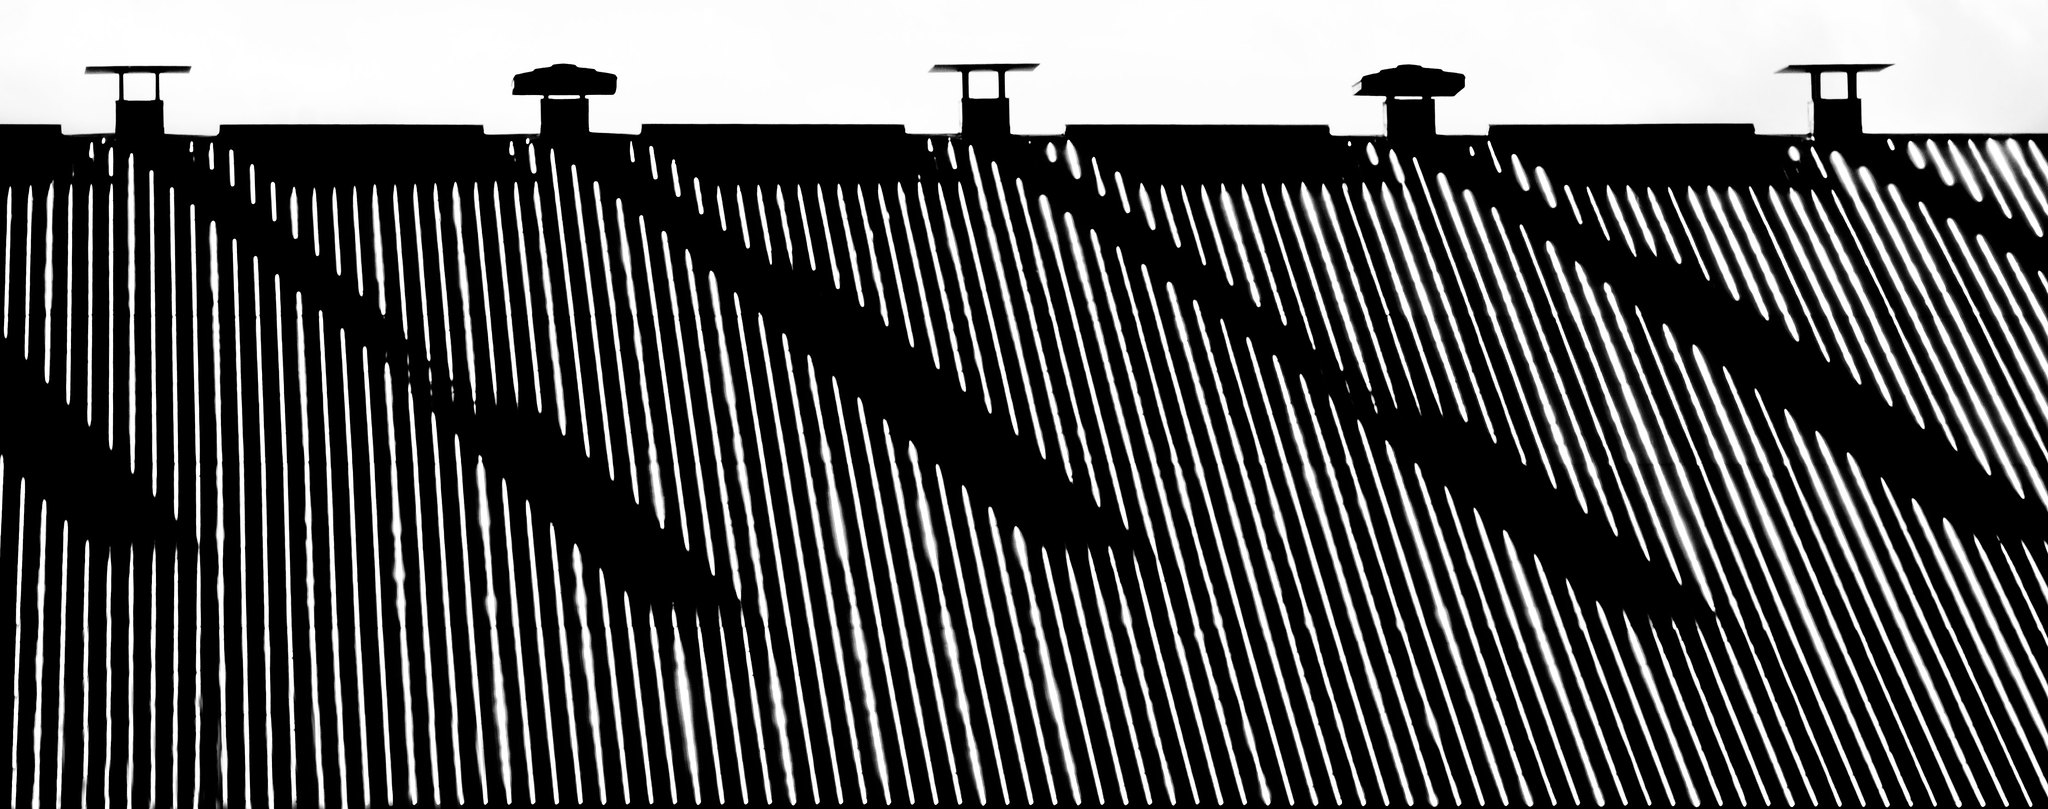 Ombres et toit - Shadow and roof